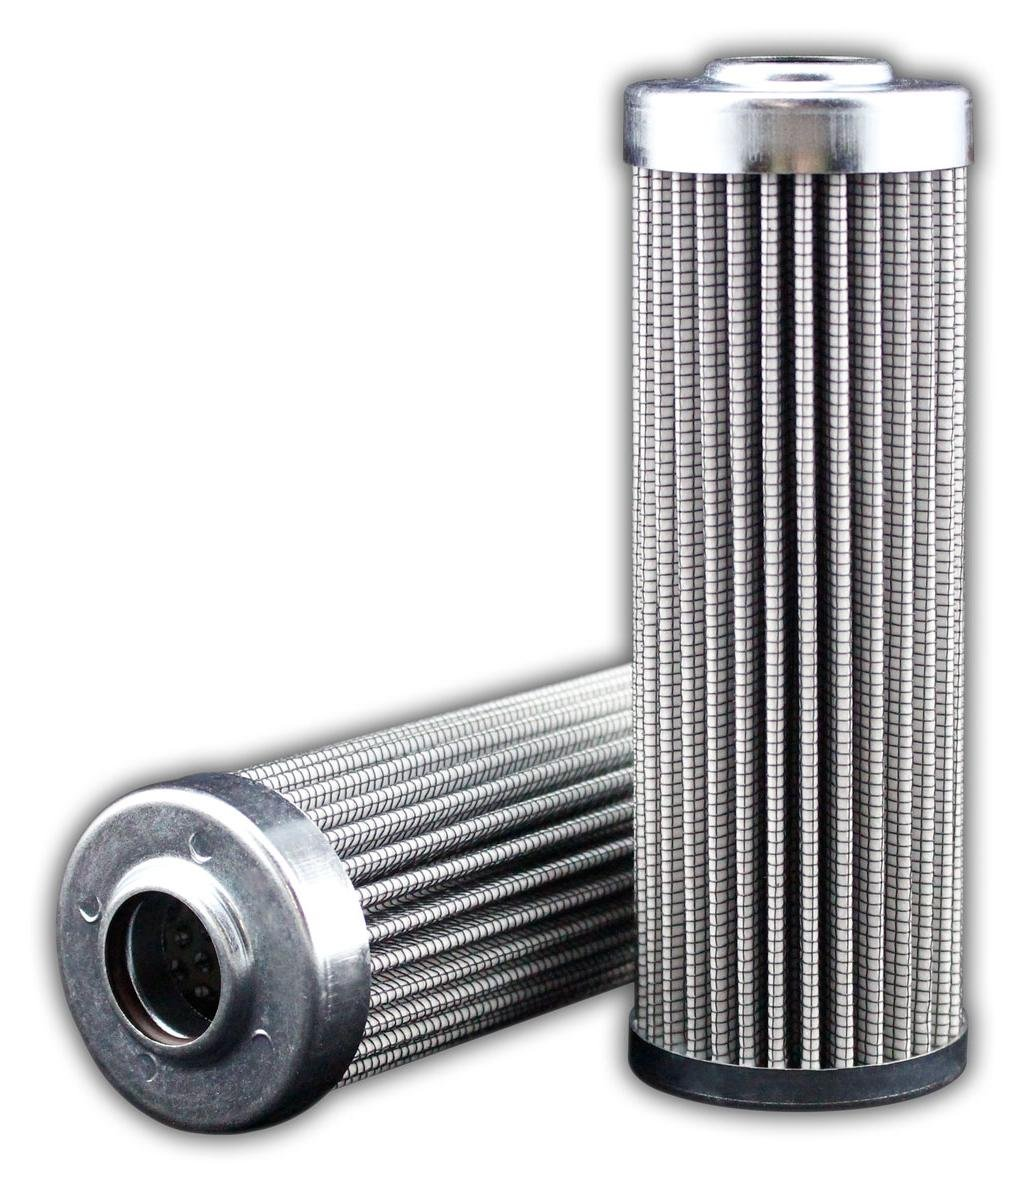 Parker FTCE1B10Q Replacement Hydraulic Filter from Big Filter Store